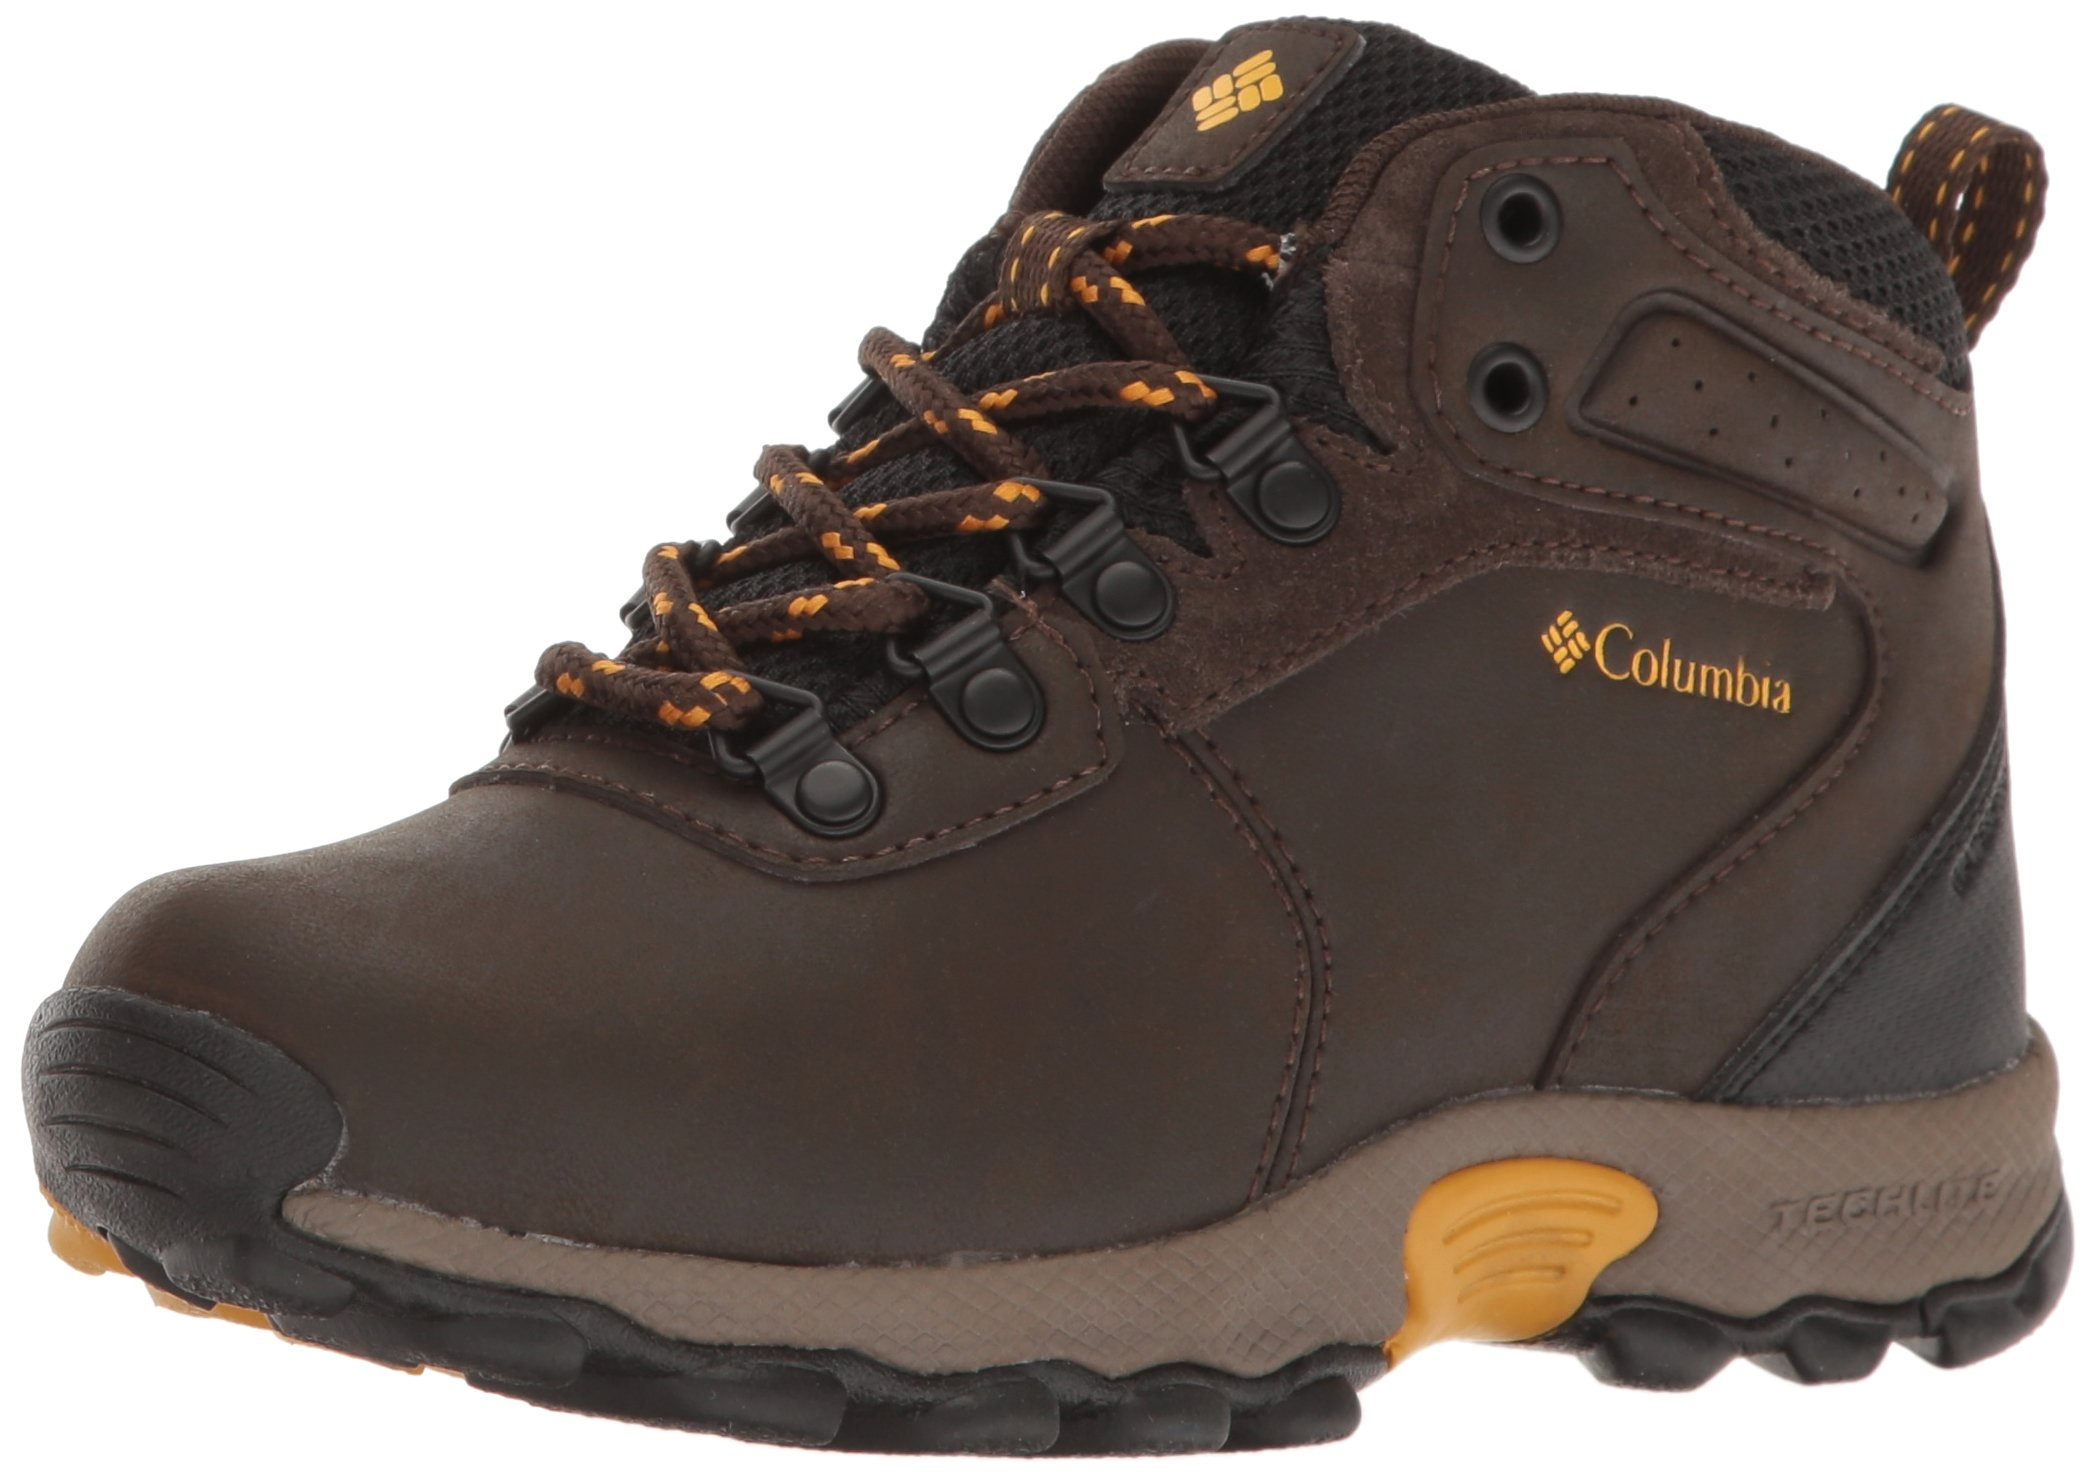 Columbia Unisex Youth Newton Ridge Hiking Shoe, Cordovan, Golden Yellow, 2 Regular US Little Kid